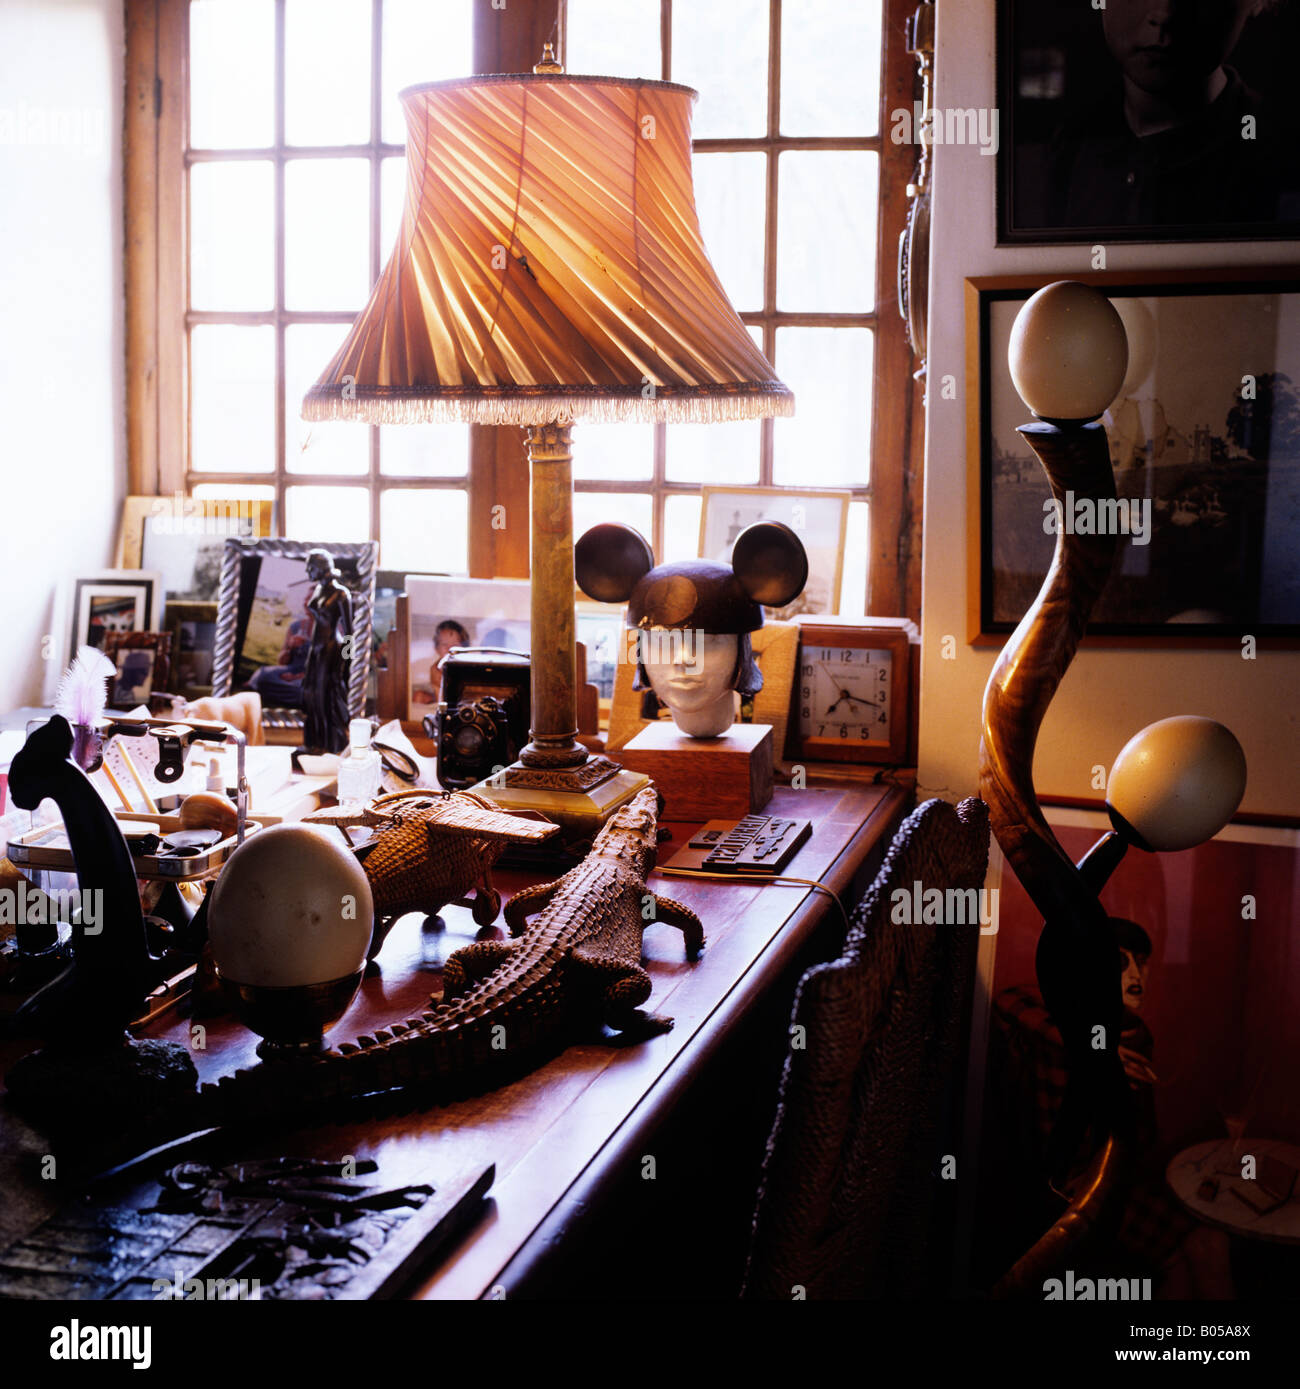 view of desk cluttered with eclectic collection of objects and family photographs - Stock Image